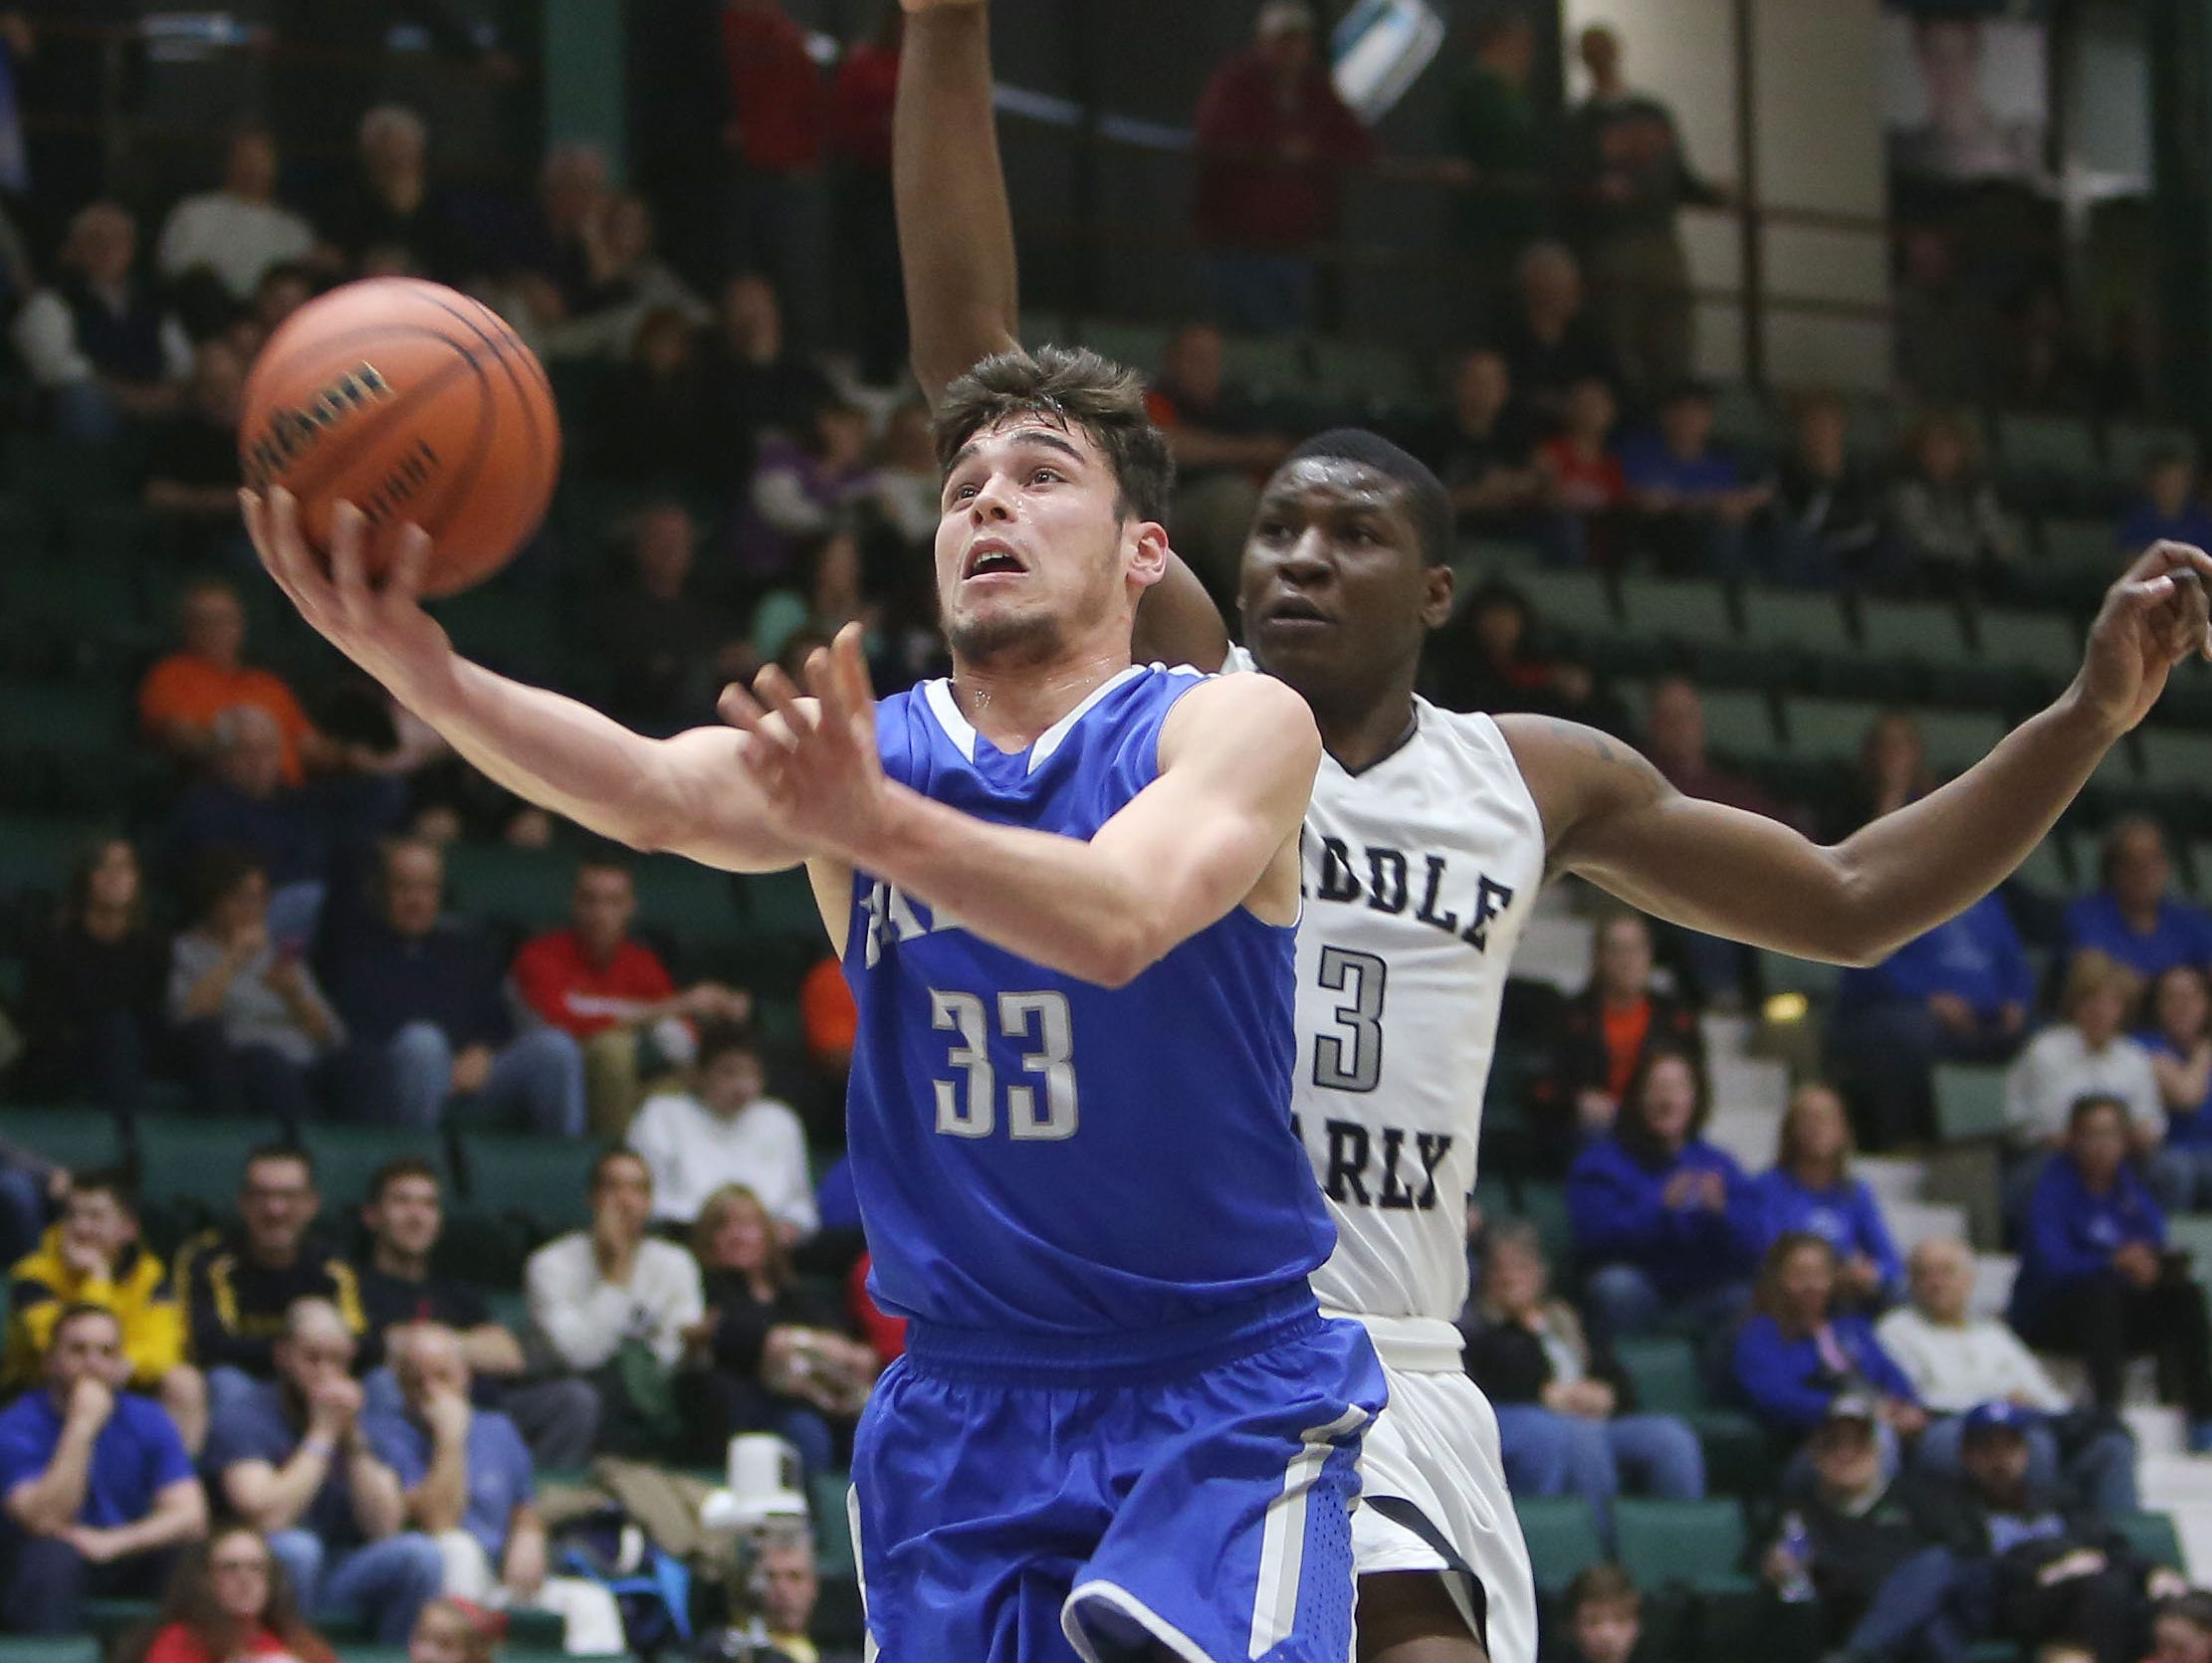 Haldane's Will Zuvic (33) tries to drive to the basket in front of Middle Early College's Gary Foster (3) during the New York State boys basketball Class C championship game at the Glens Falls Civic Center March 12, 2016. Middle Early College won the game 82-42.